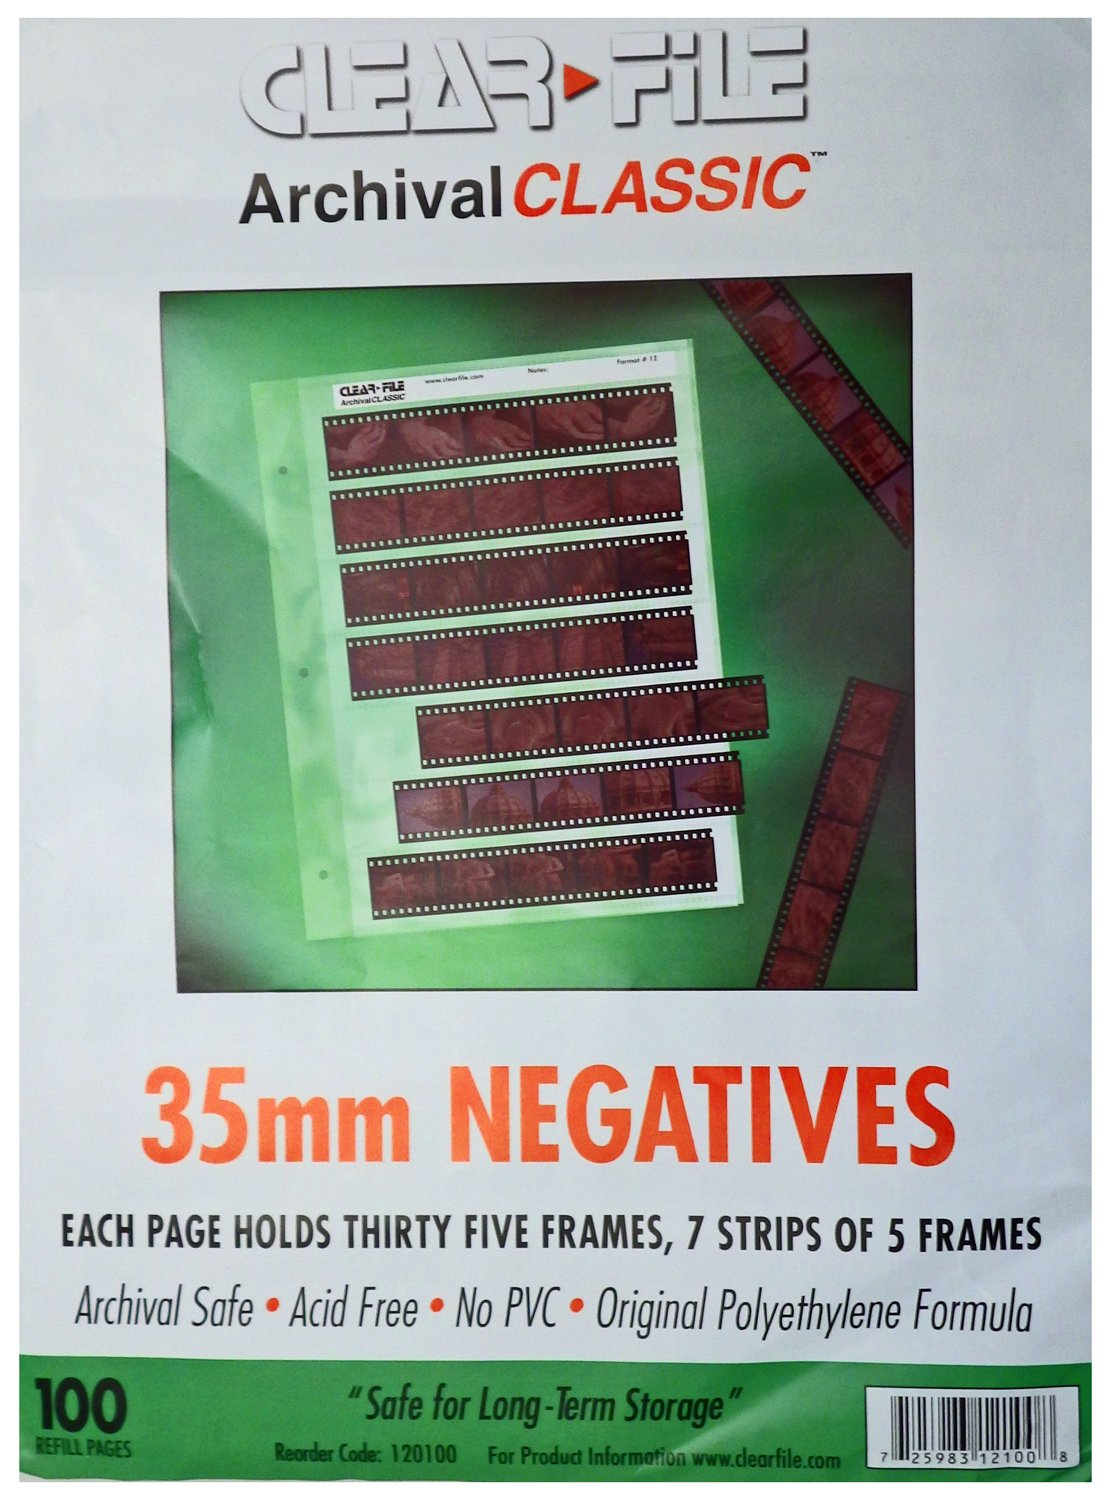 ClearFile Archival Classic ~ 35mm Negative Pages, 100 Pack by Clear File (Image #1)